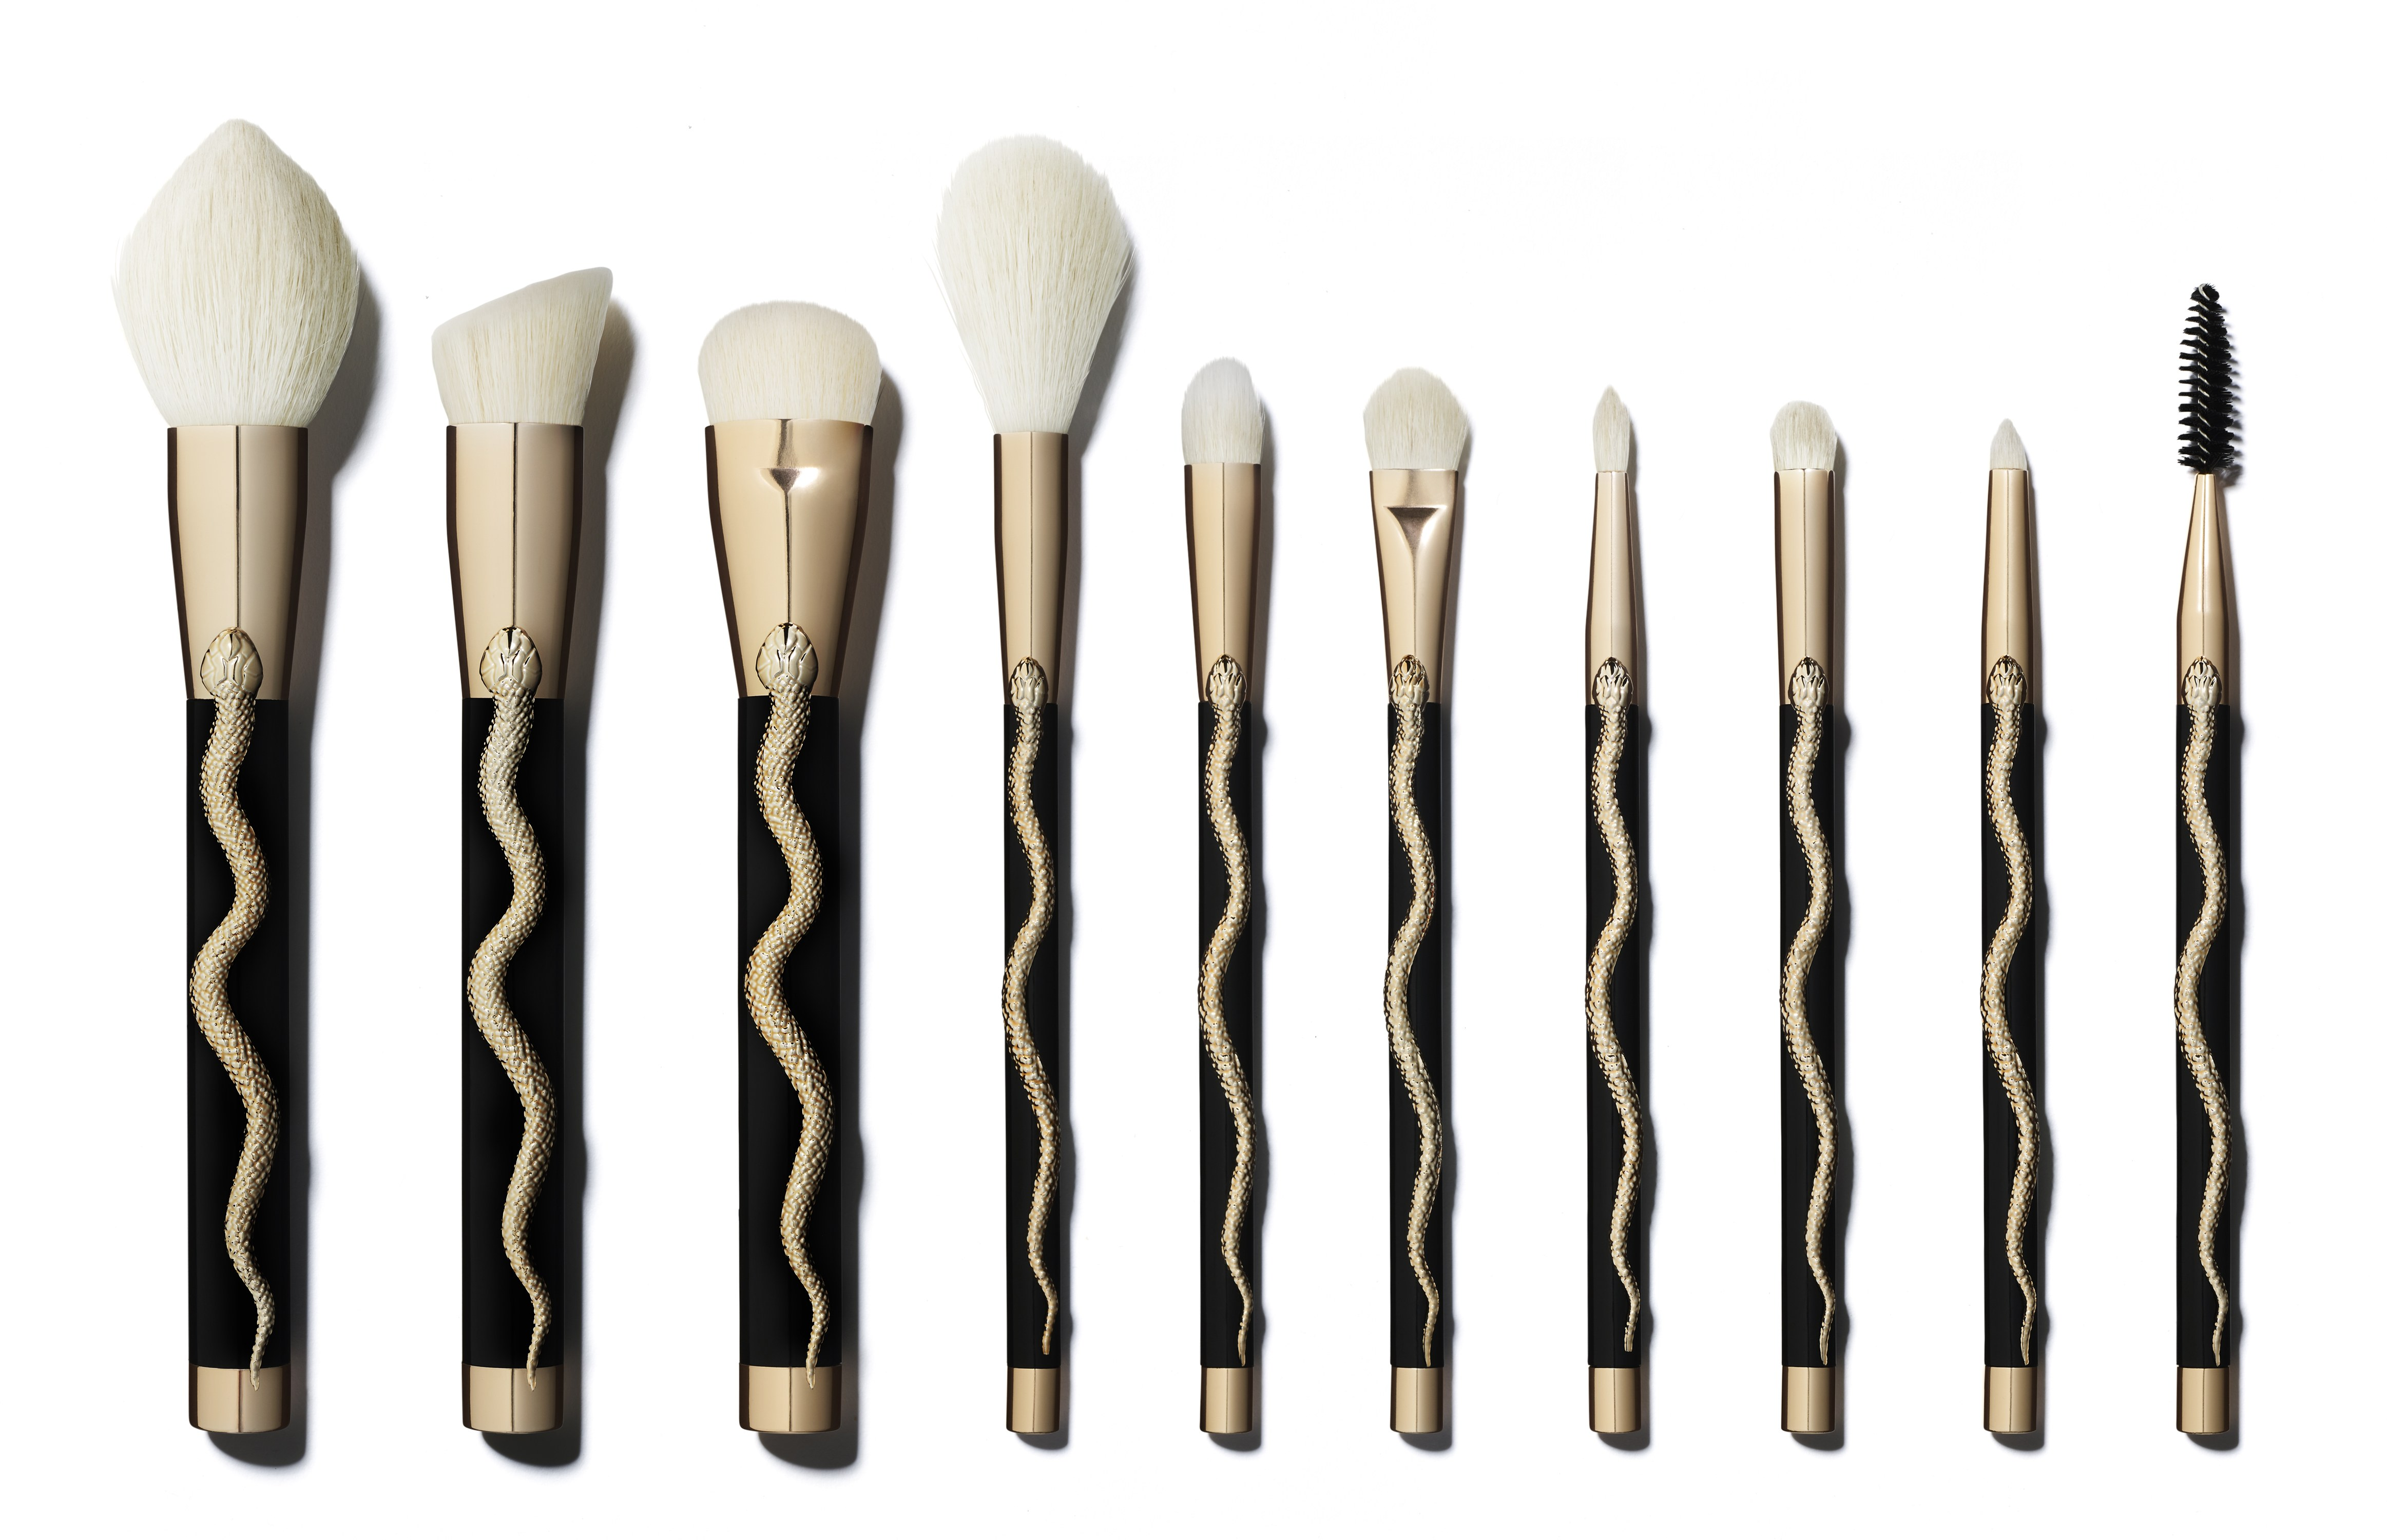 Sonia's Serpent 10-Piece Brush Set